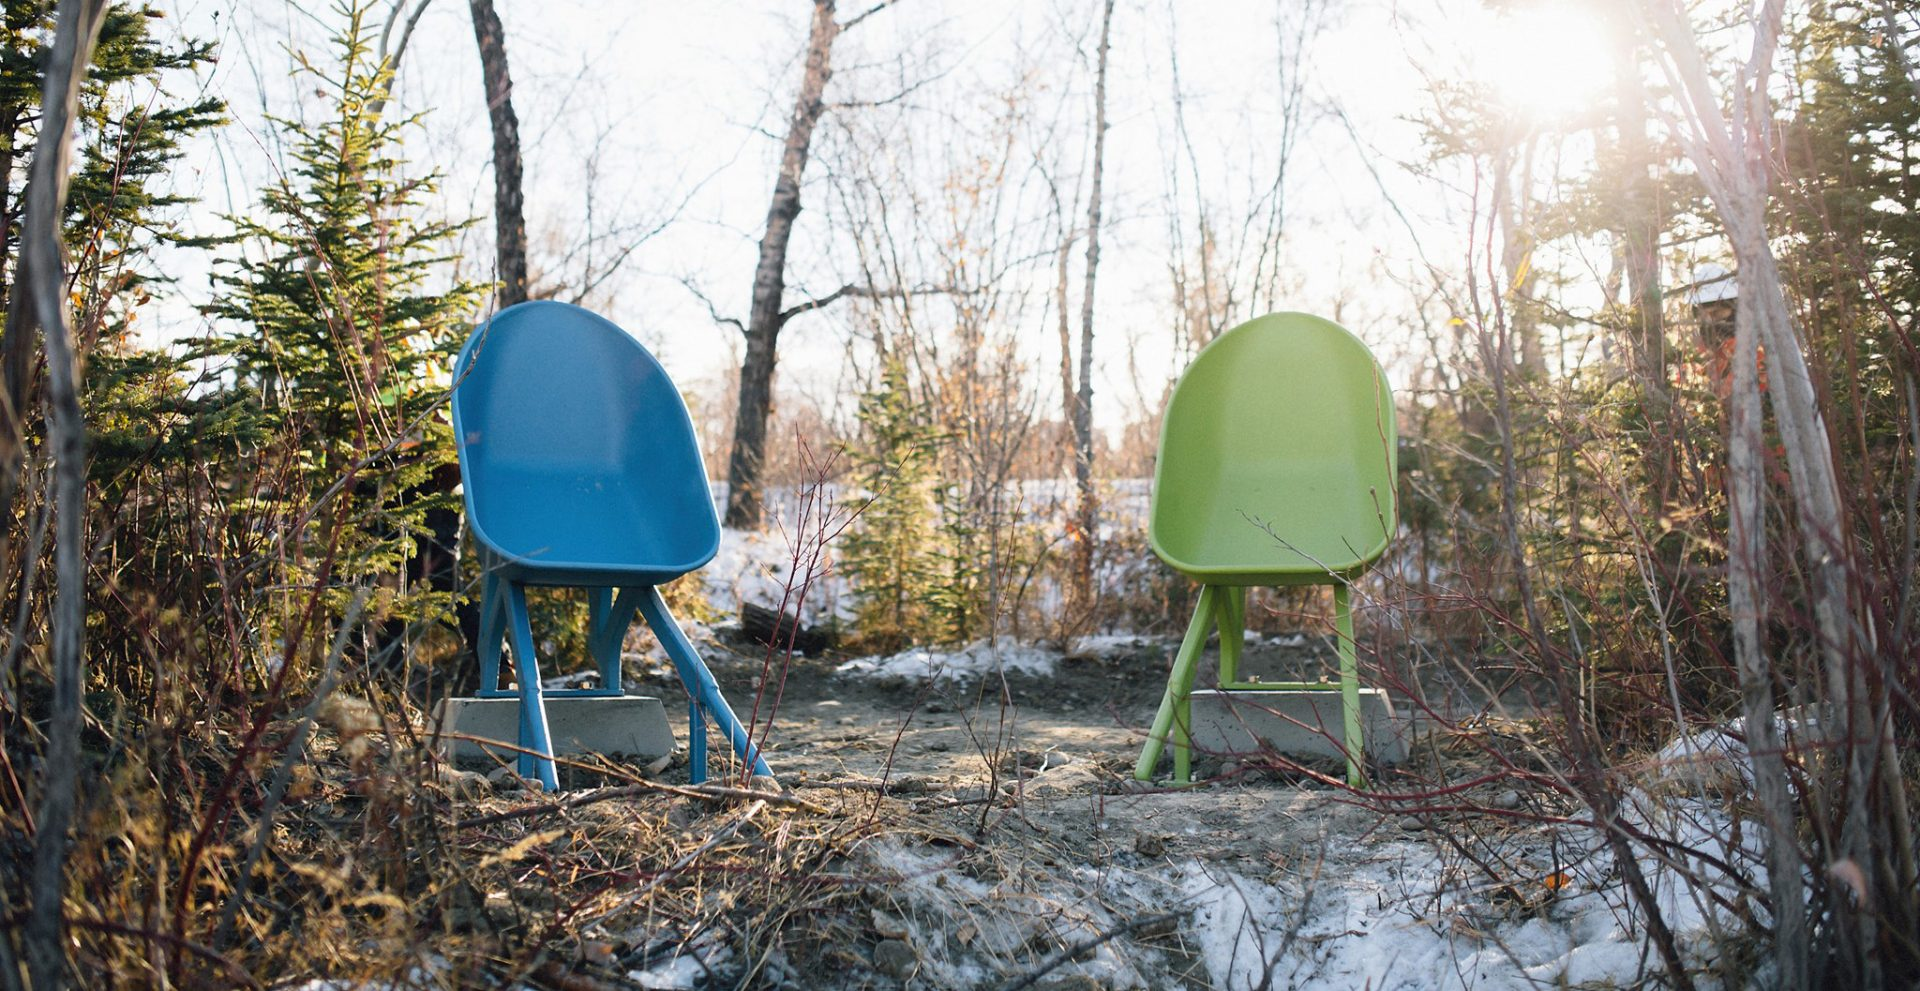 Experience functional art at this revitalized Calgary island park